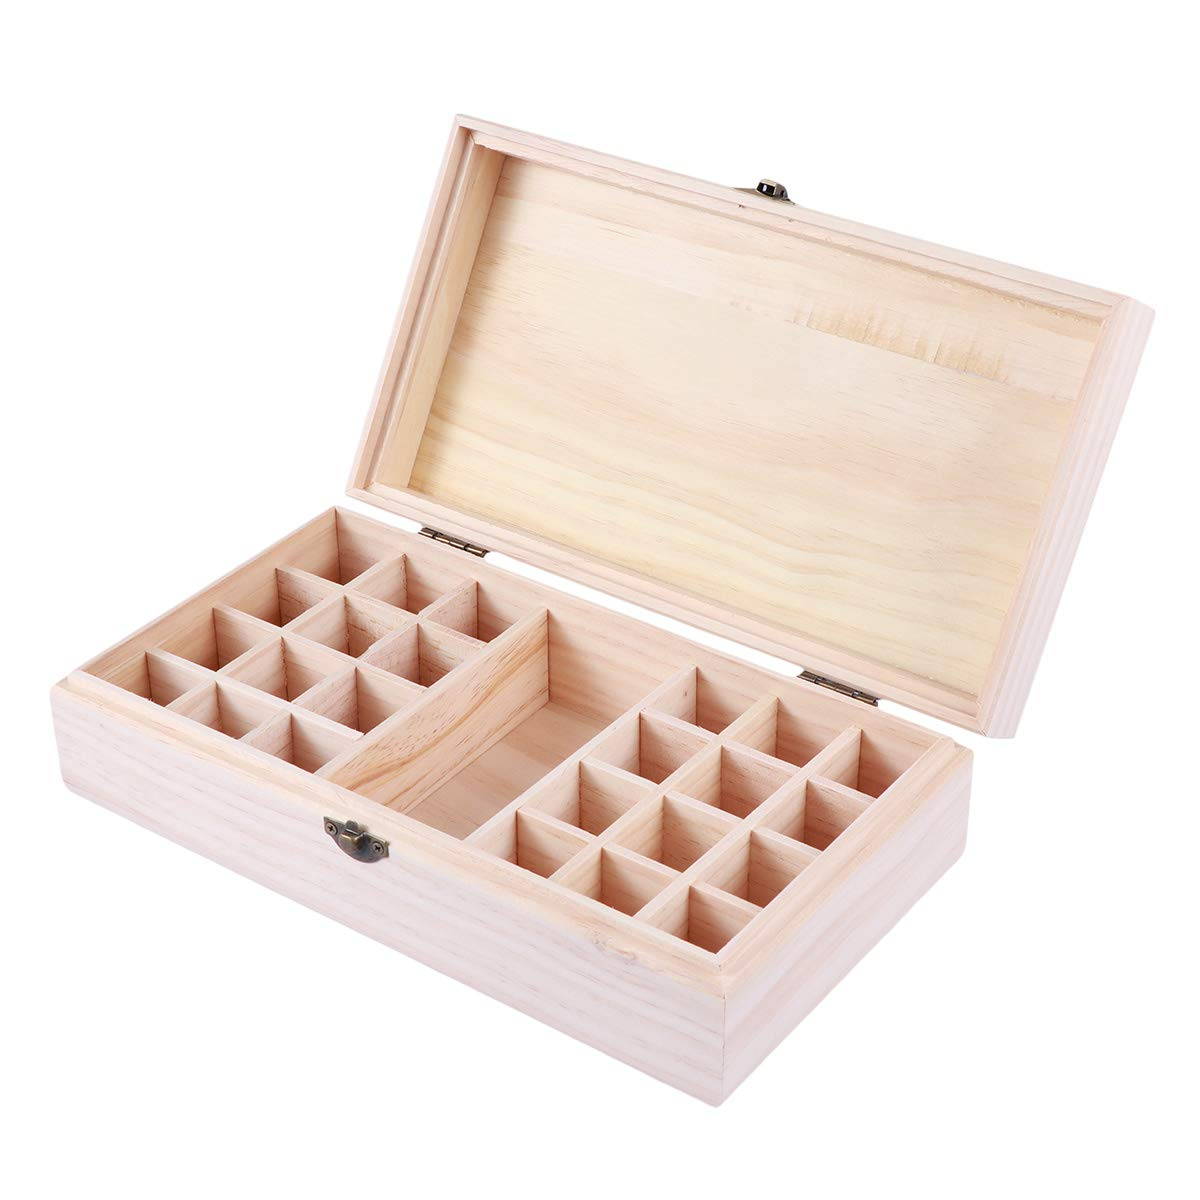 Healifty Essential Oil Wooden Box 24+1 Bottle Essential Oil Wooden Storage Case Portable Carrying Travel Box Holder Organizer